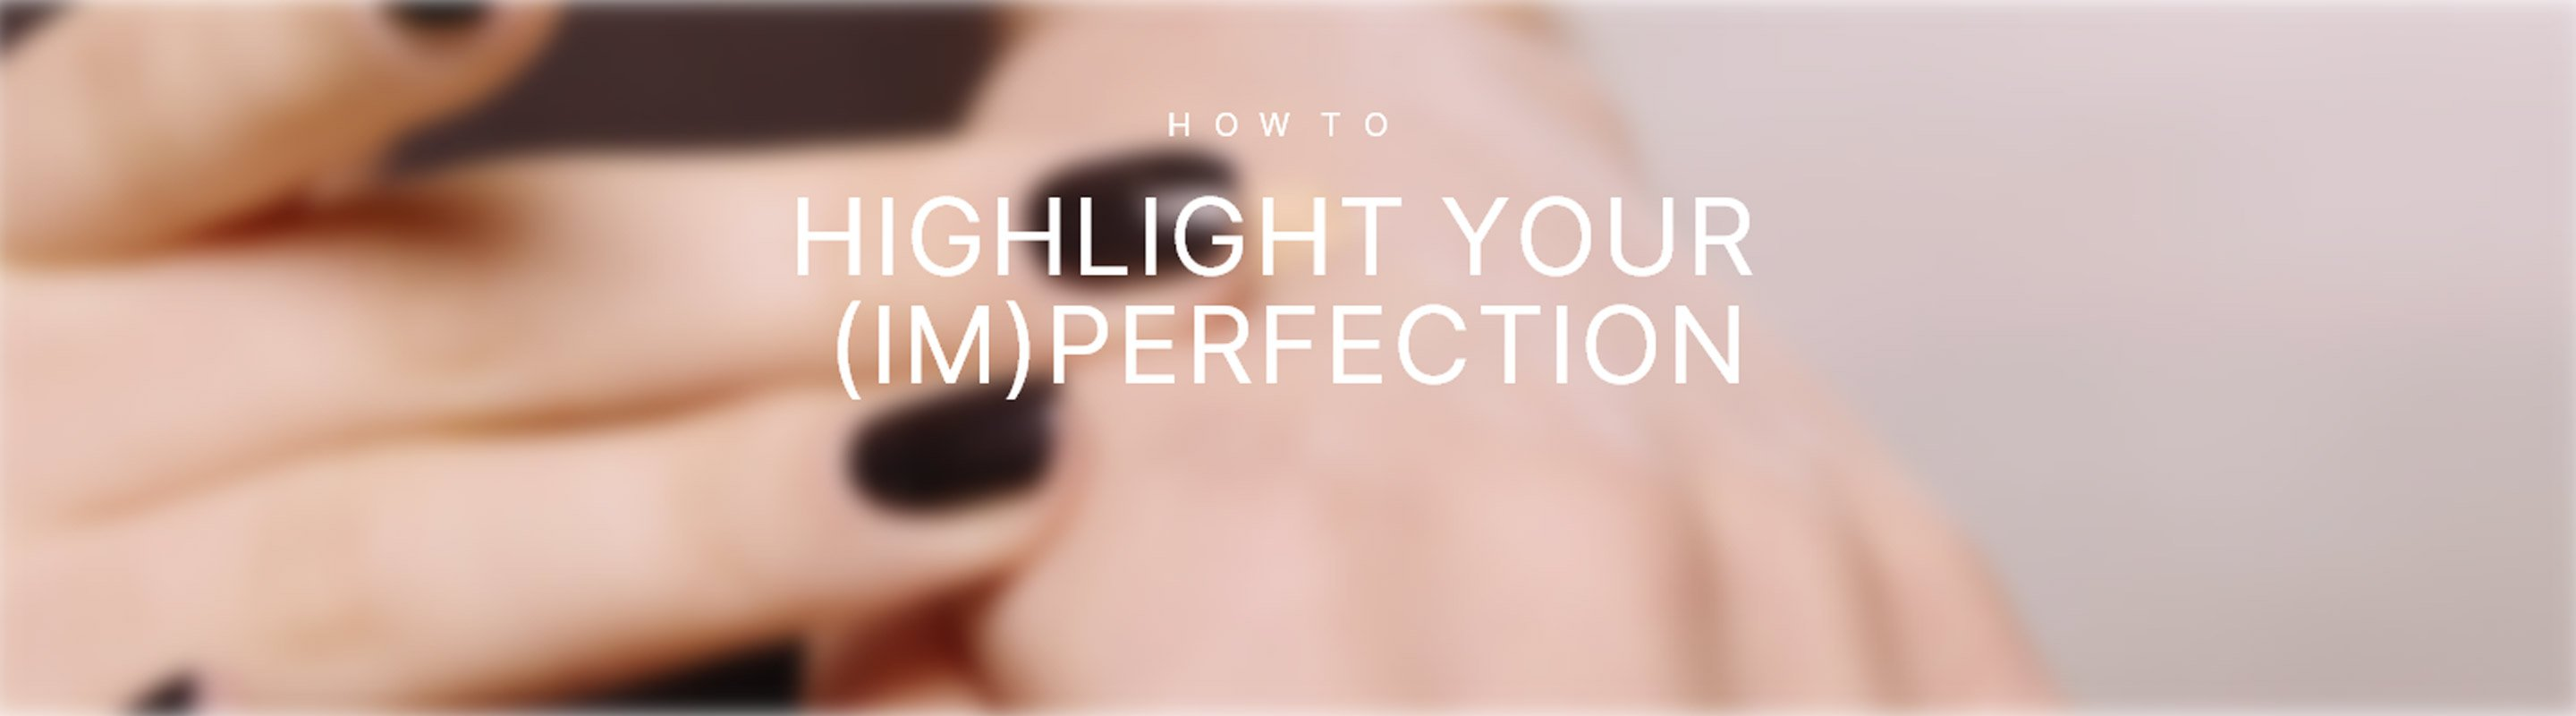 How To Highlight Your (Im)perfection